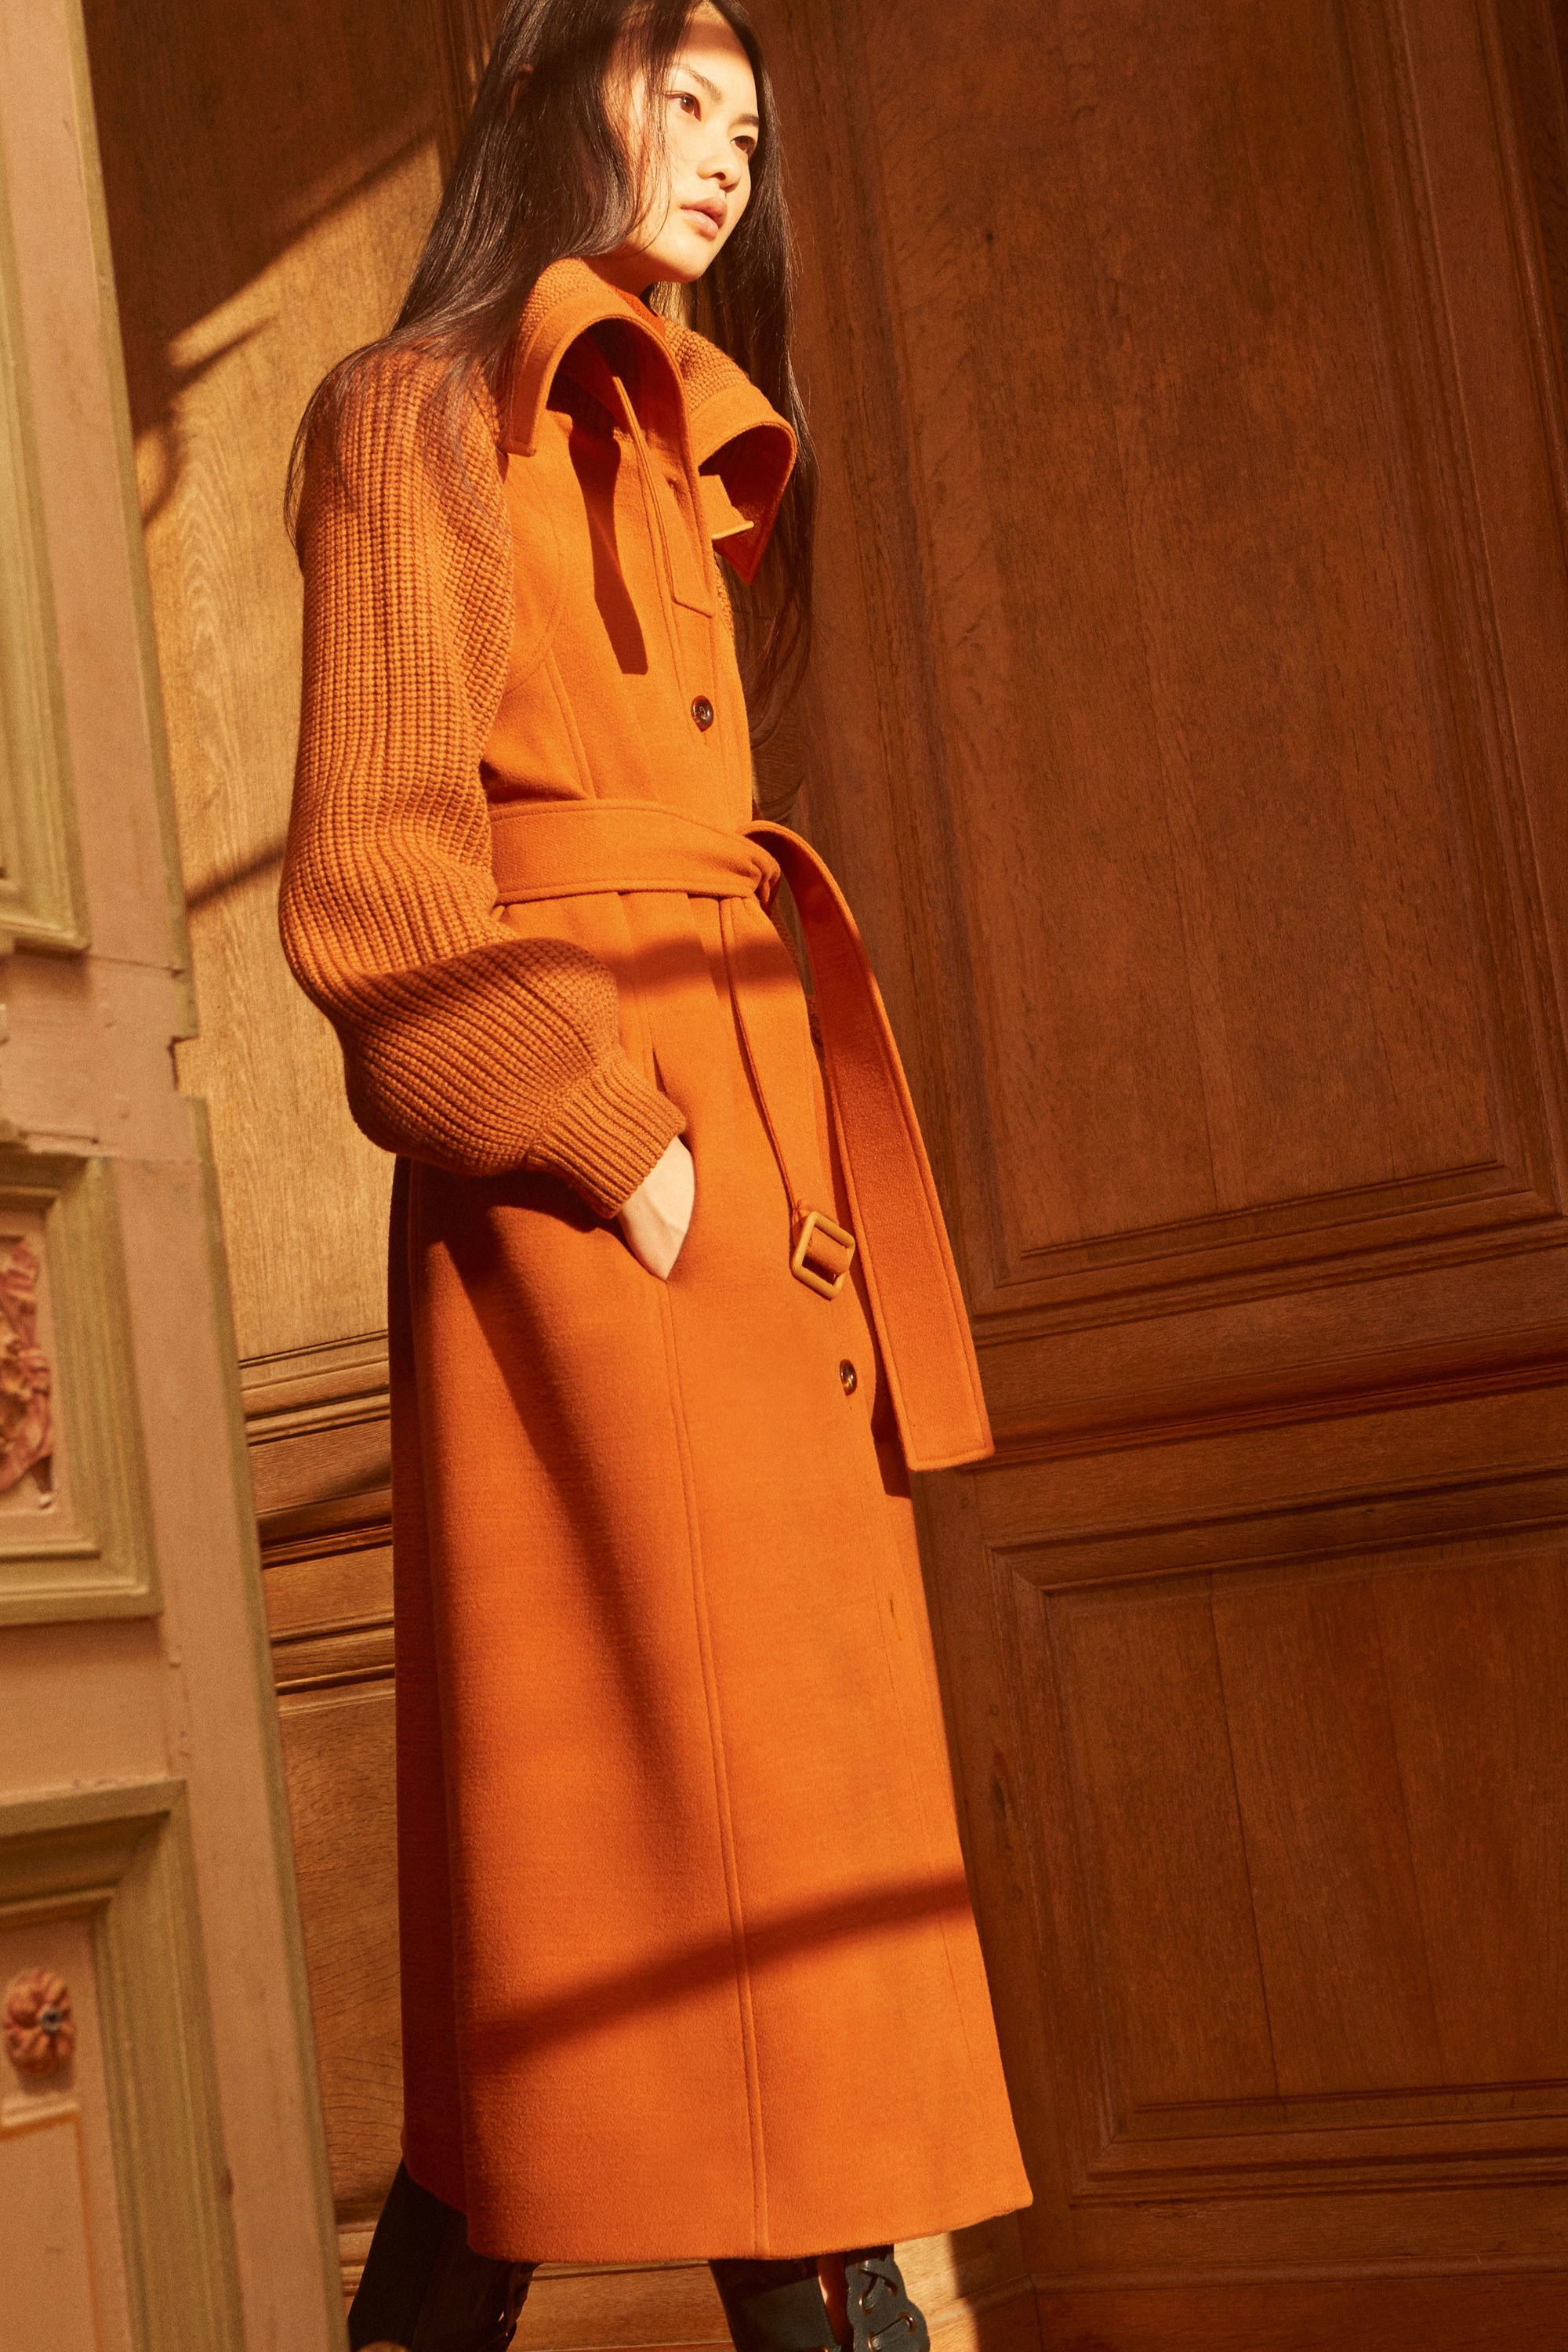 Chloé pre fall 2017 - how to work orange fall 2017